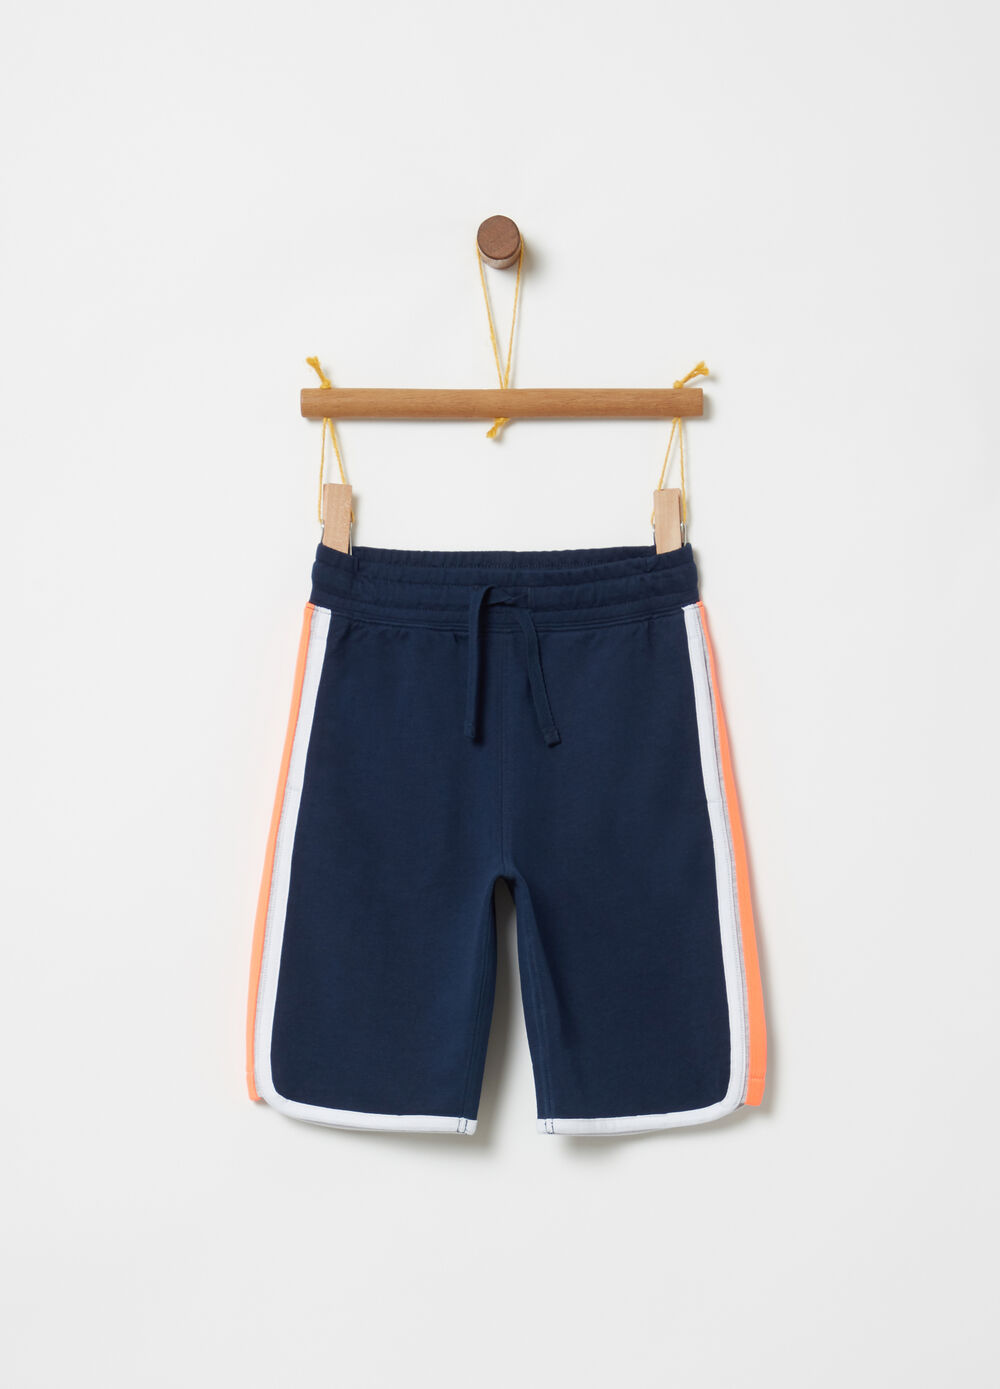 French terry shorts with drawstring and inserts